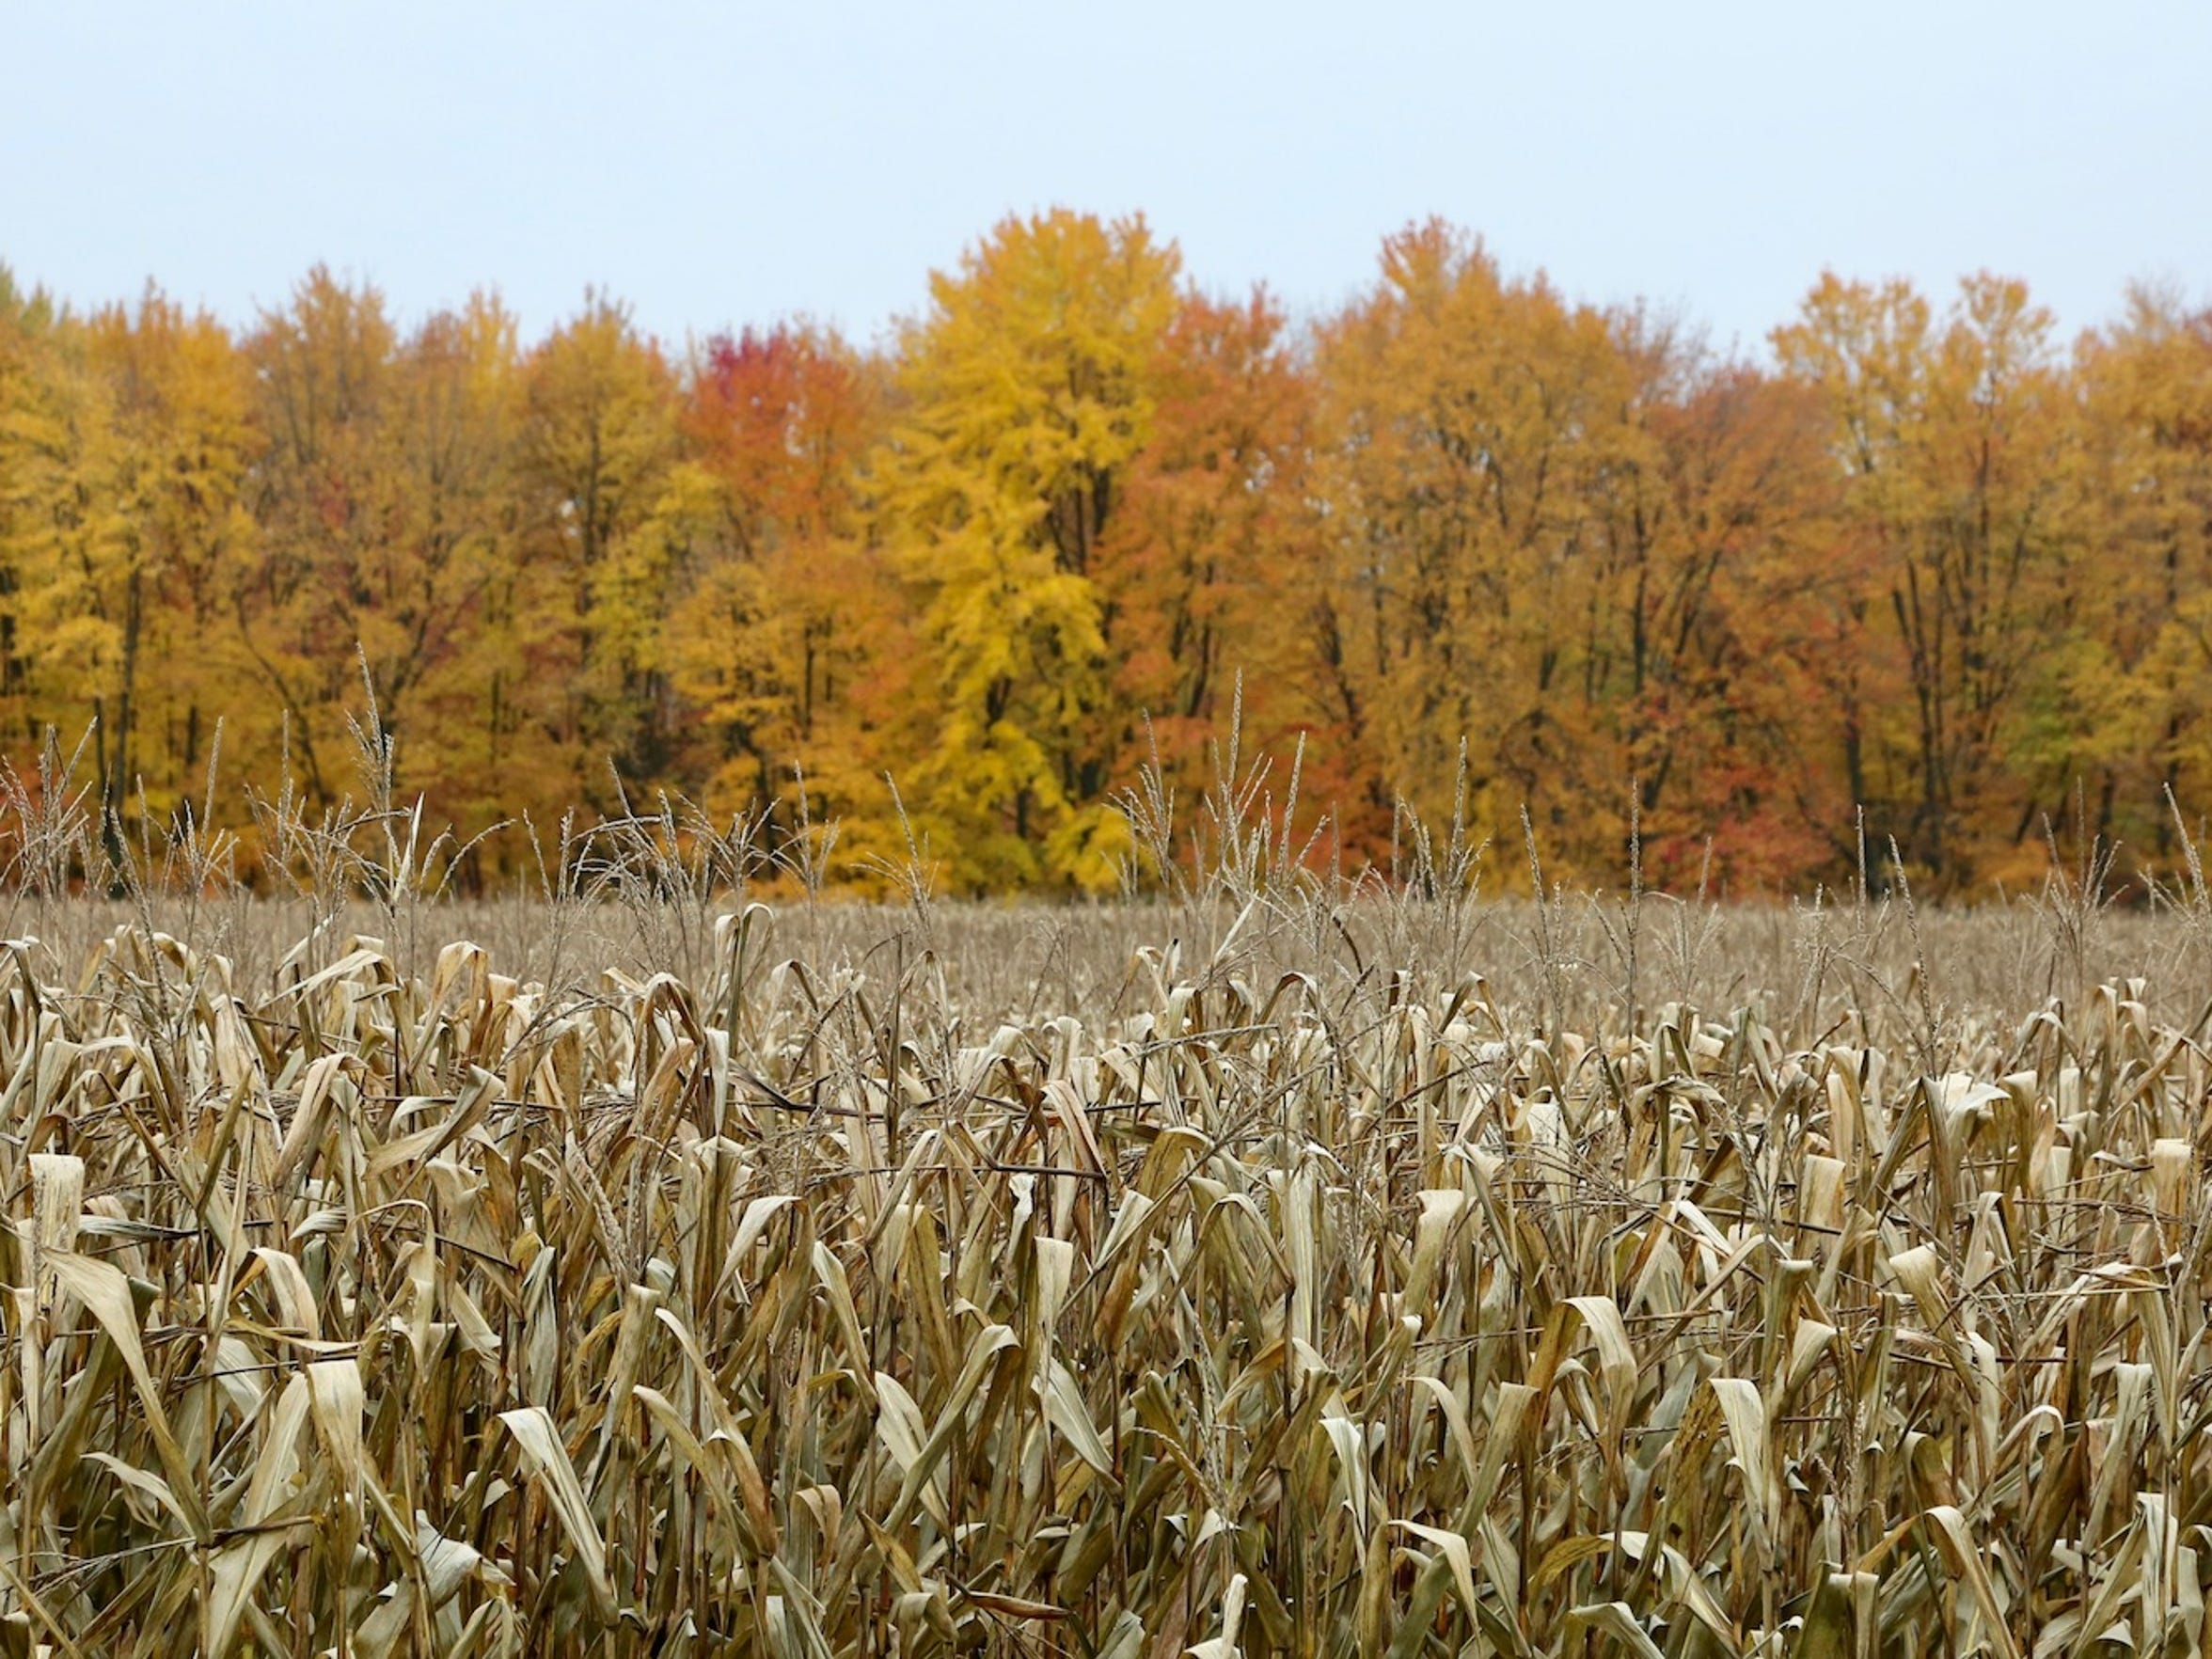 The leaves were turning near Humbird, Wis.